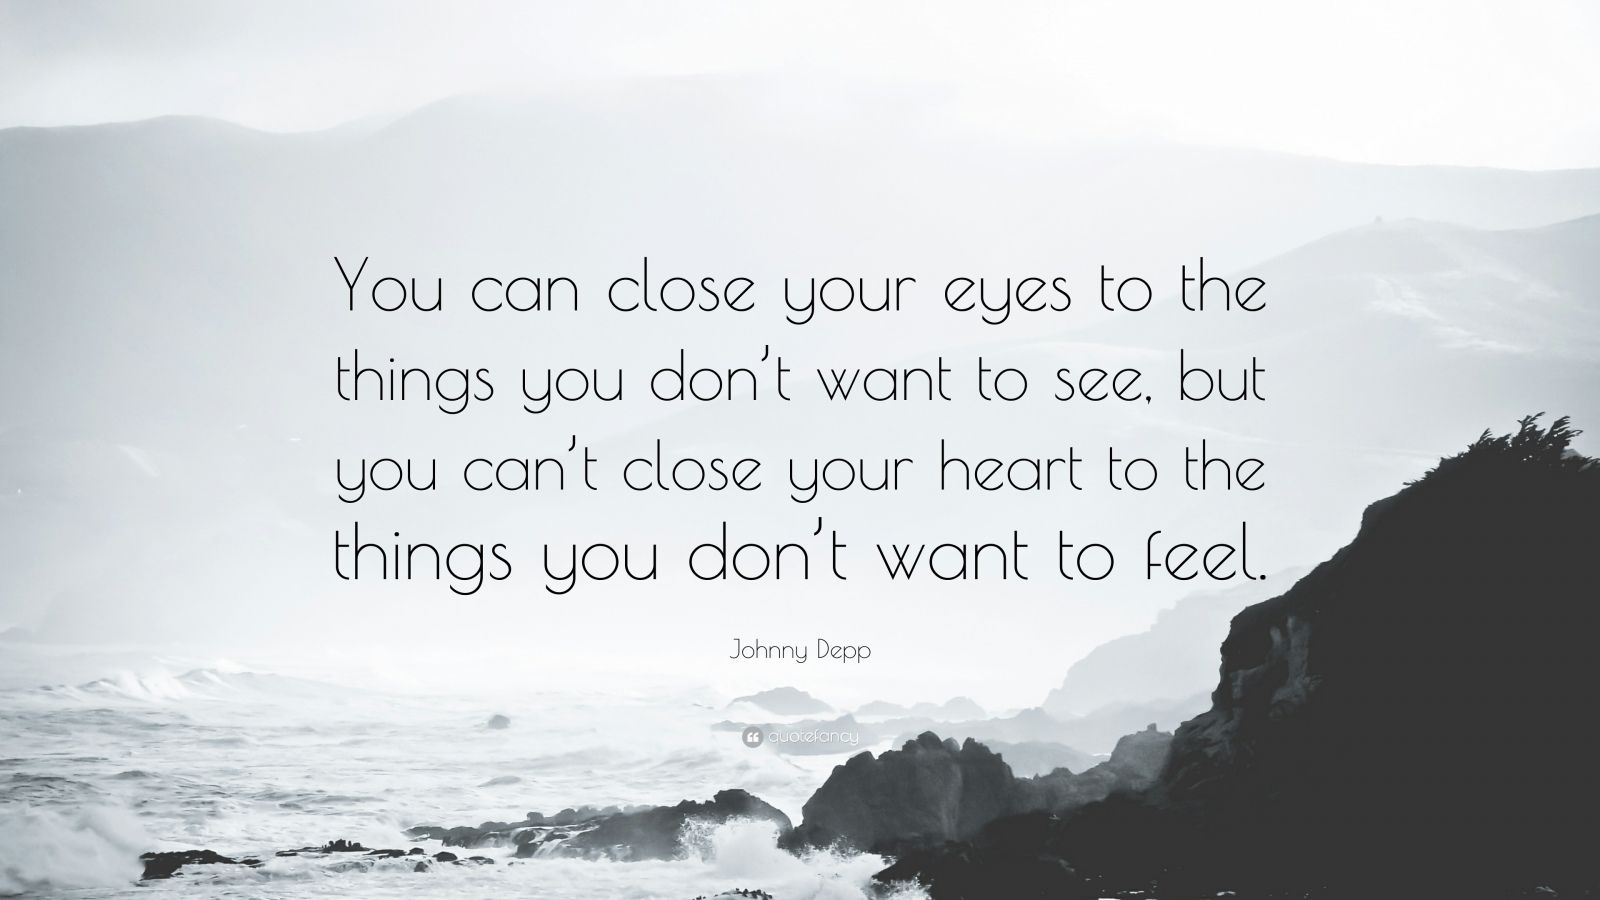 "Broken Heart Quotes: ""You can close your eyes to the things you don't want to see, but you can't close your heart to the things you don't want to feel."" — Johnny Depp"